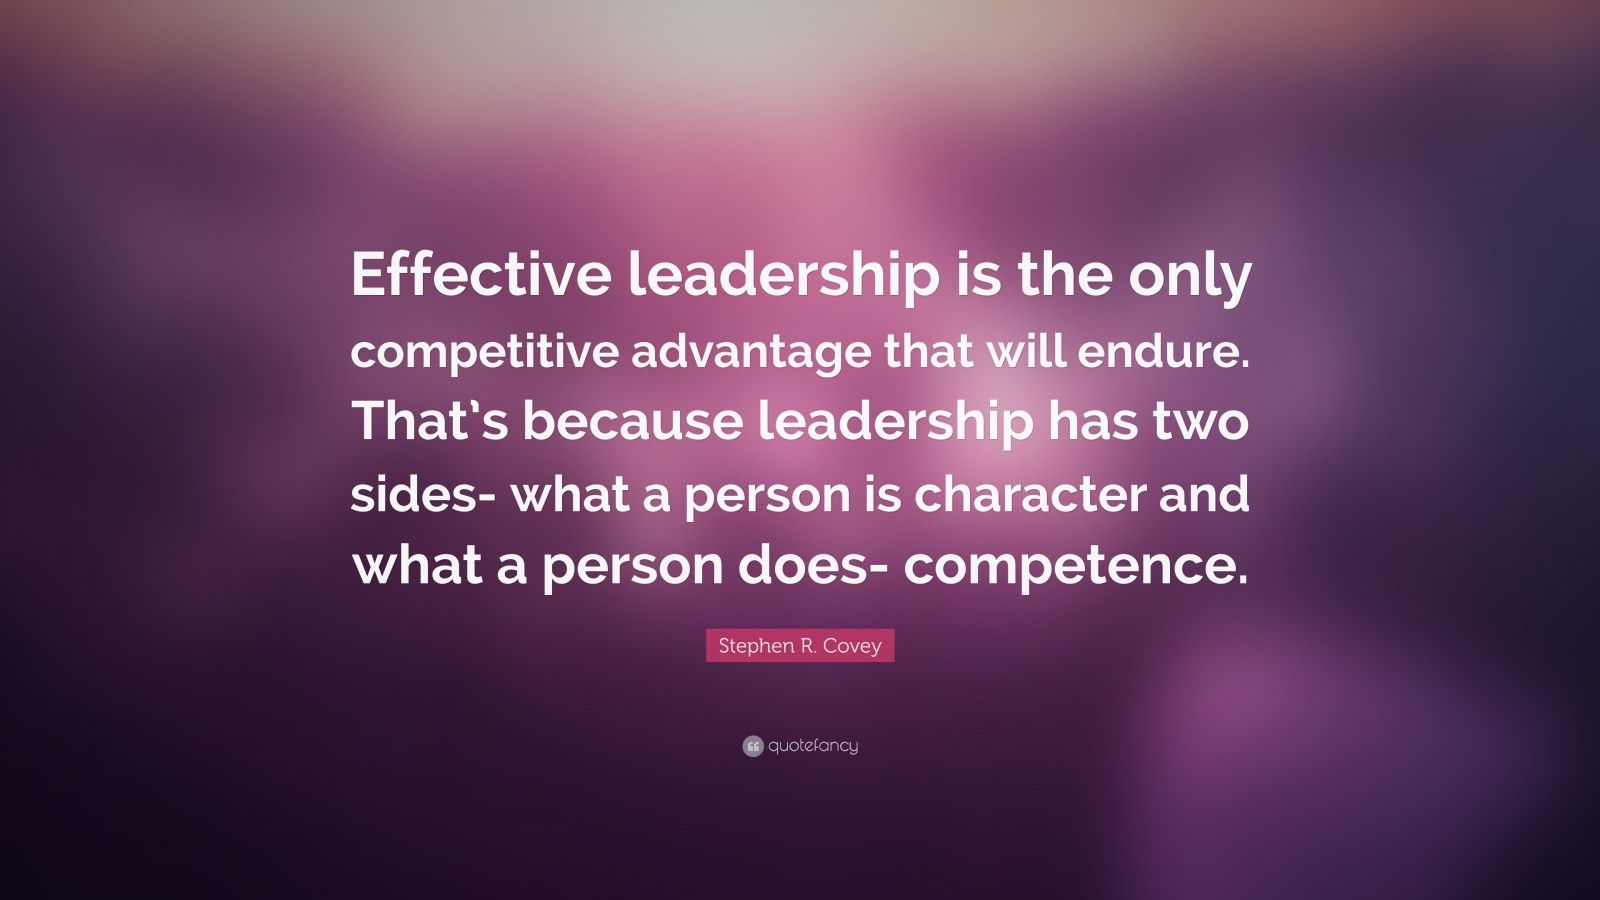 """Stephen R. Covey Quote: """"Effective leadership is the only competitive advantage that will endure. That's because leadership has two sides- what a person is character and what a person does- competence."""""""